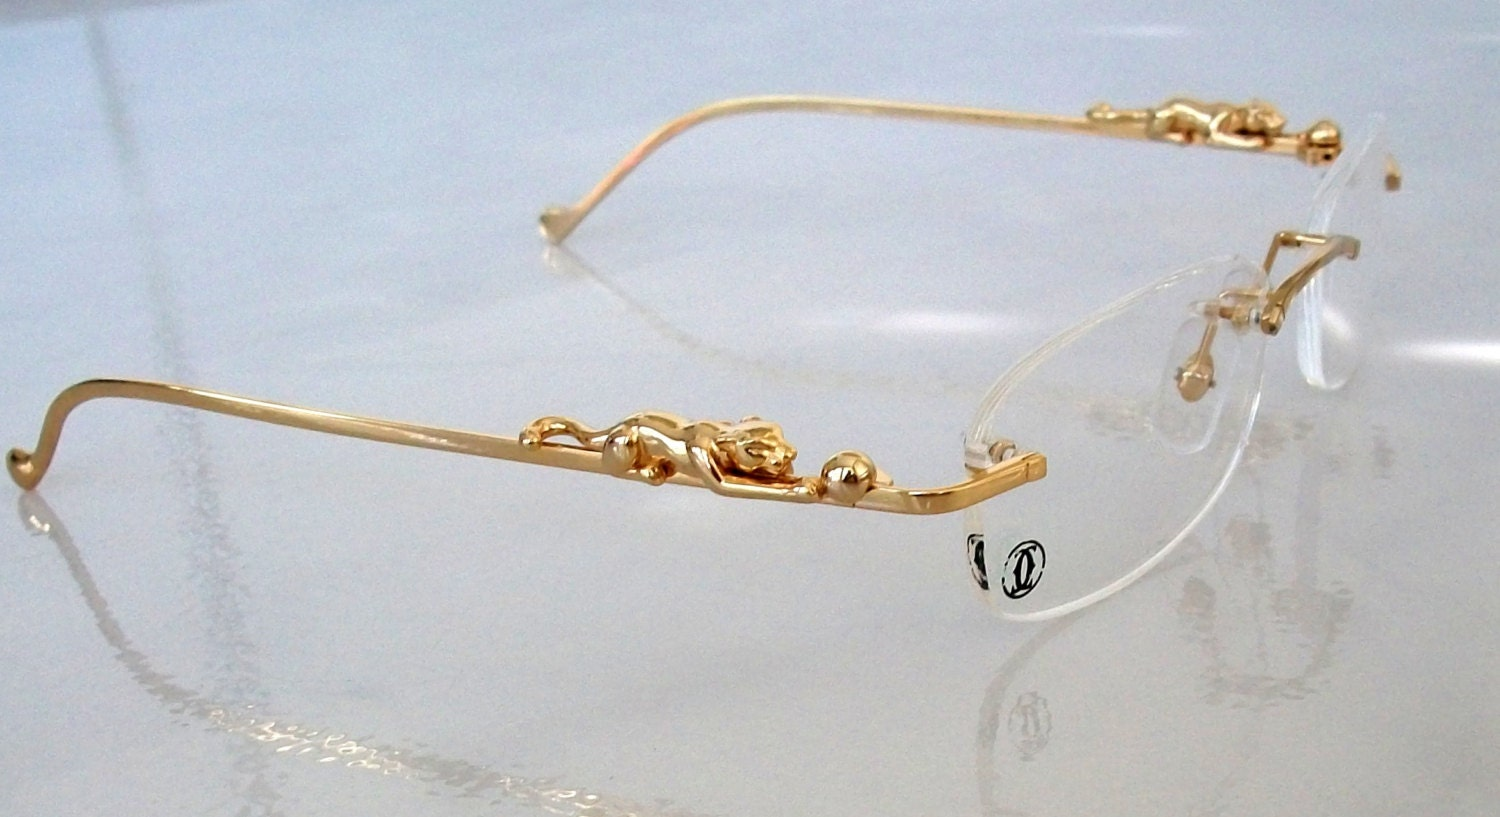 PANTHERE Eyeglass Frame Gold Plated Rimless Glasses Hand Made